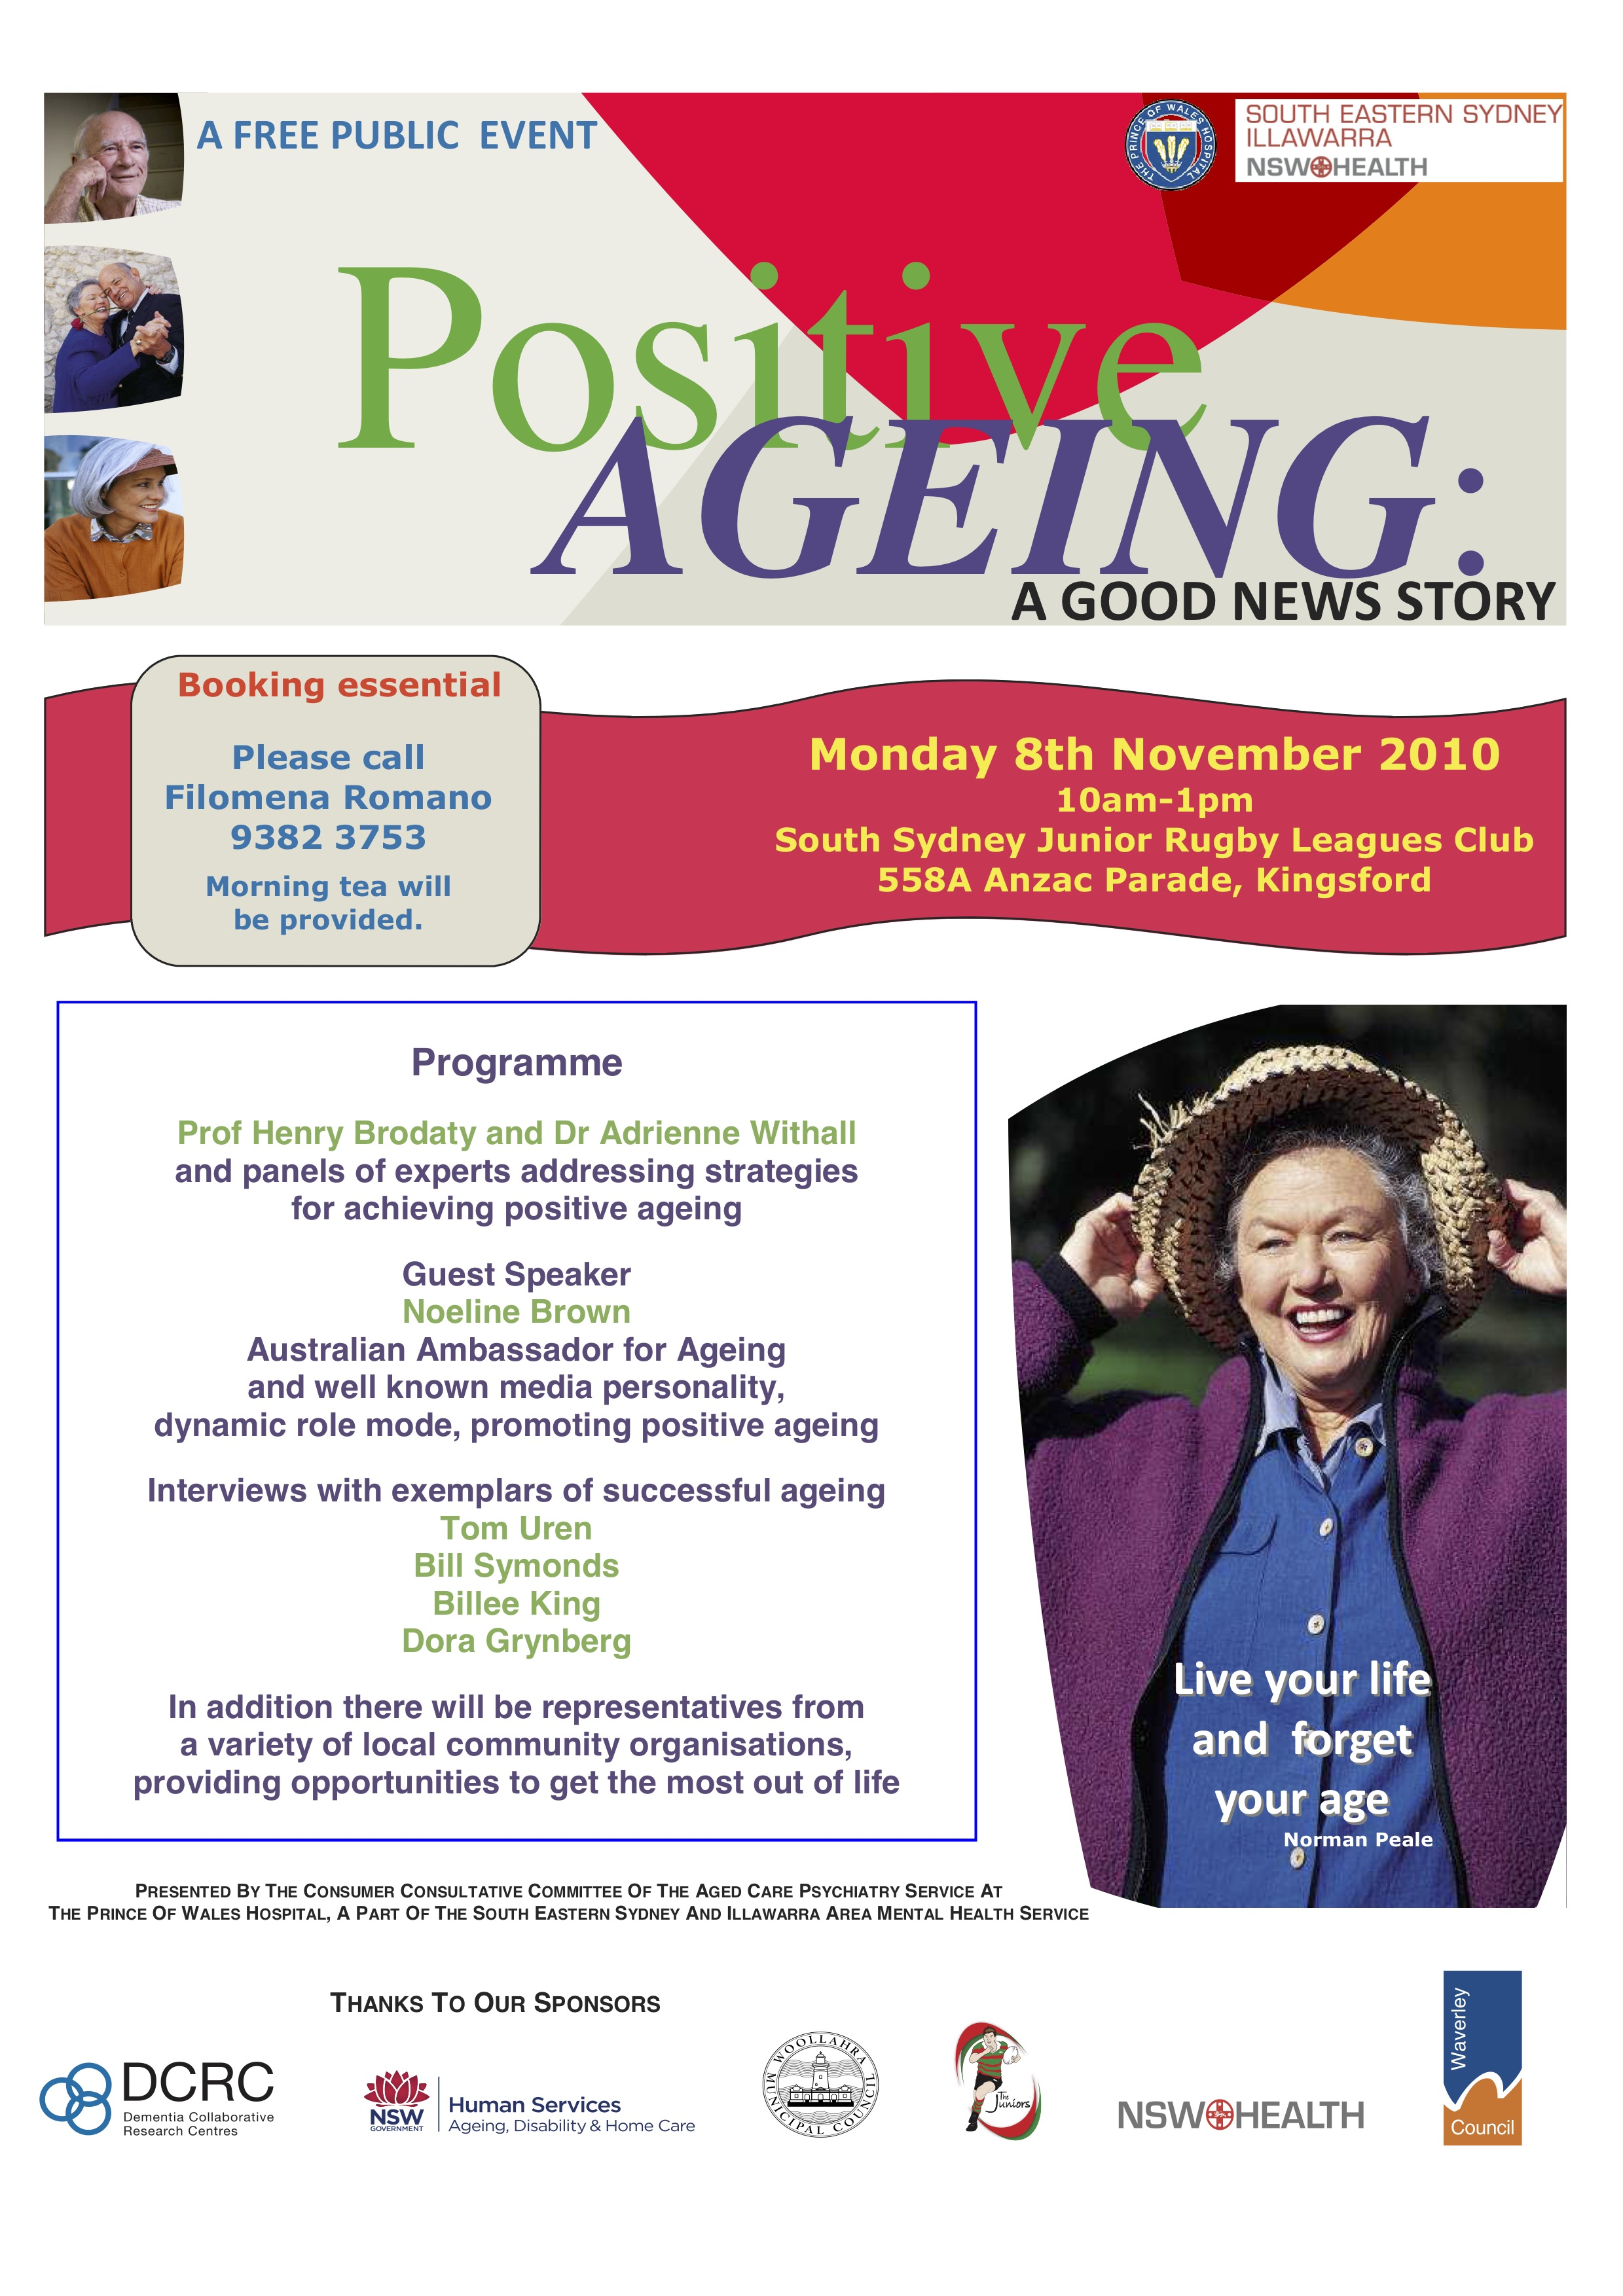 2010 Positive Ageing A Good News Story .jpg